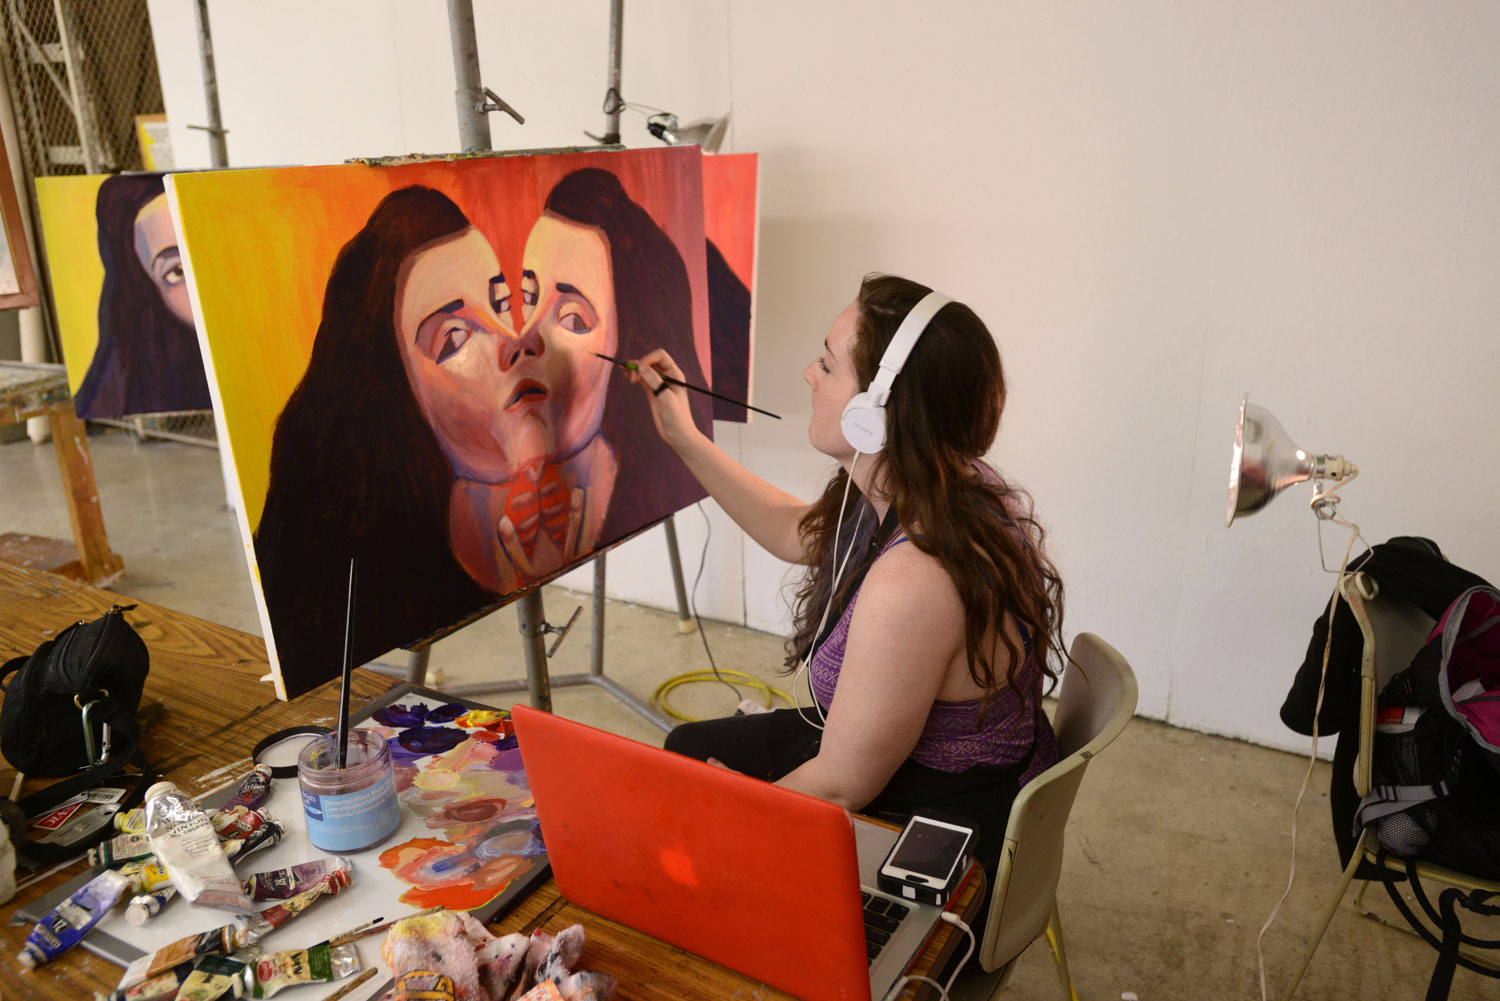 A student, surrounded by her work, paints in her private space in the Art building.